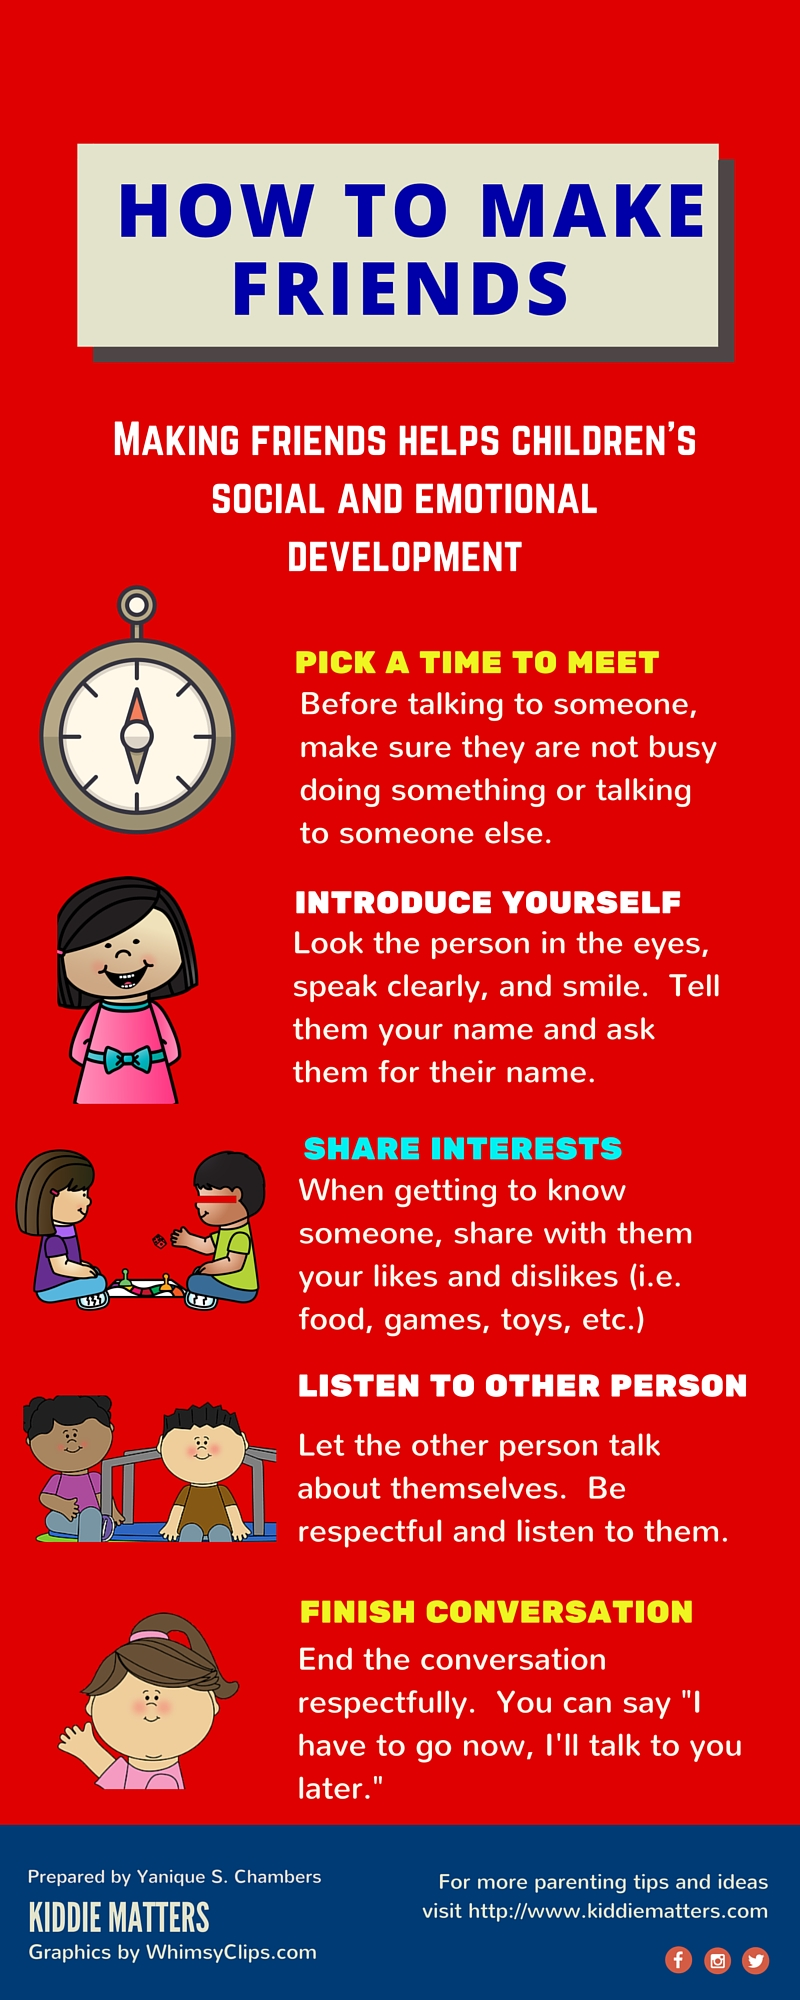 How To Make Friends As An Adult In 4 Simple Steps